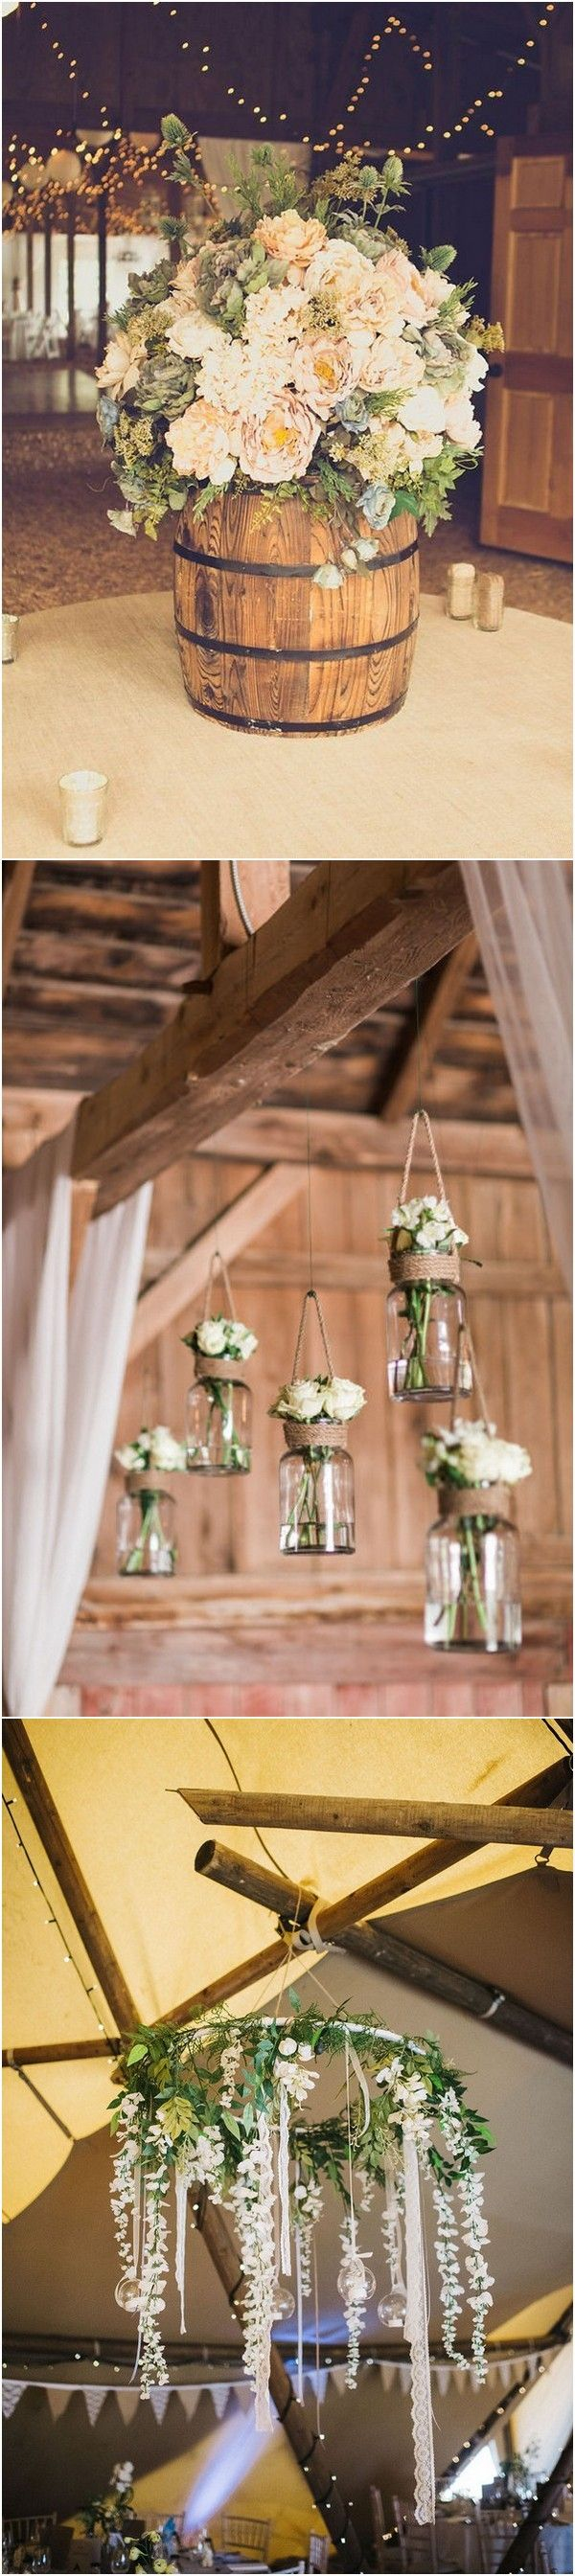 country rustic barn wedding decoration ideas